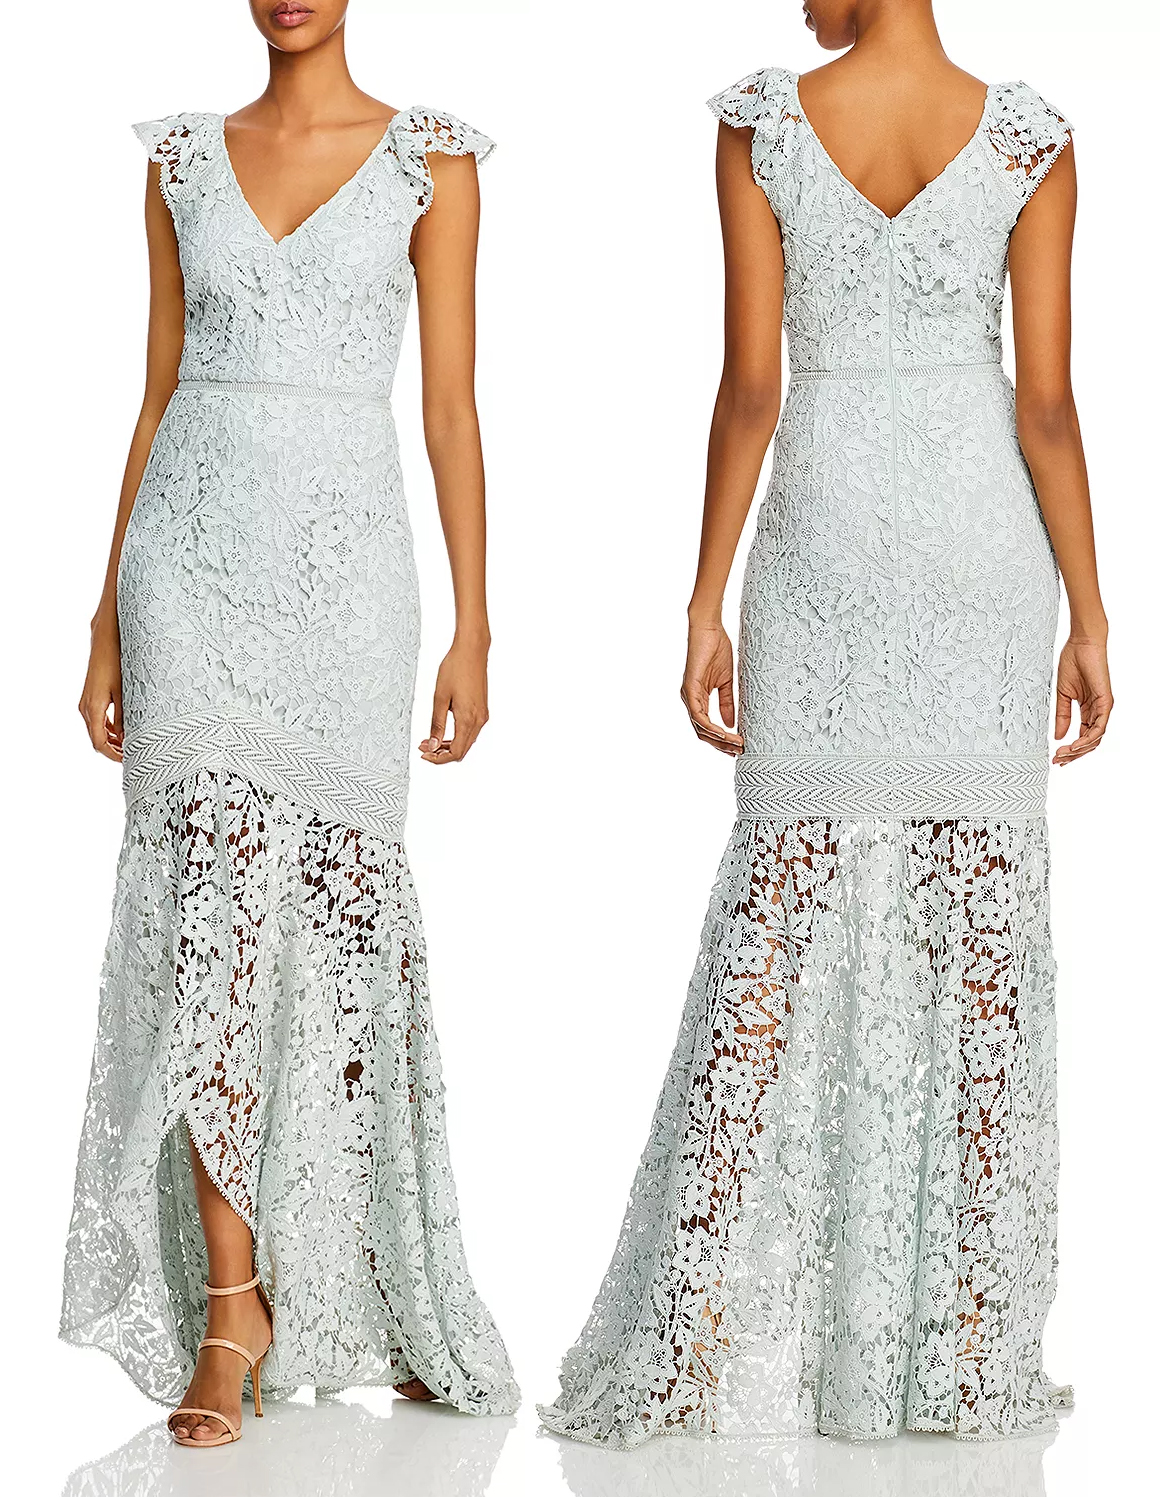 ML Monique Lhuillier Long Lace Dress 2021. Long Lace dresses 2020. Long Mother of the Bride Dresses 2021. Best Mother of the Bride Dresses 2021. Luxury Mother of the Bride Dresses 2021. Mini Mother of the Bride Dress 2021. Mother of the Groom Outfits 2021